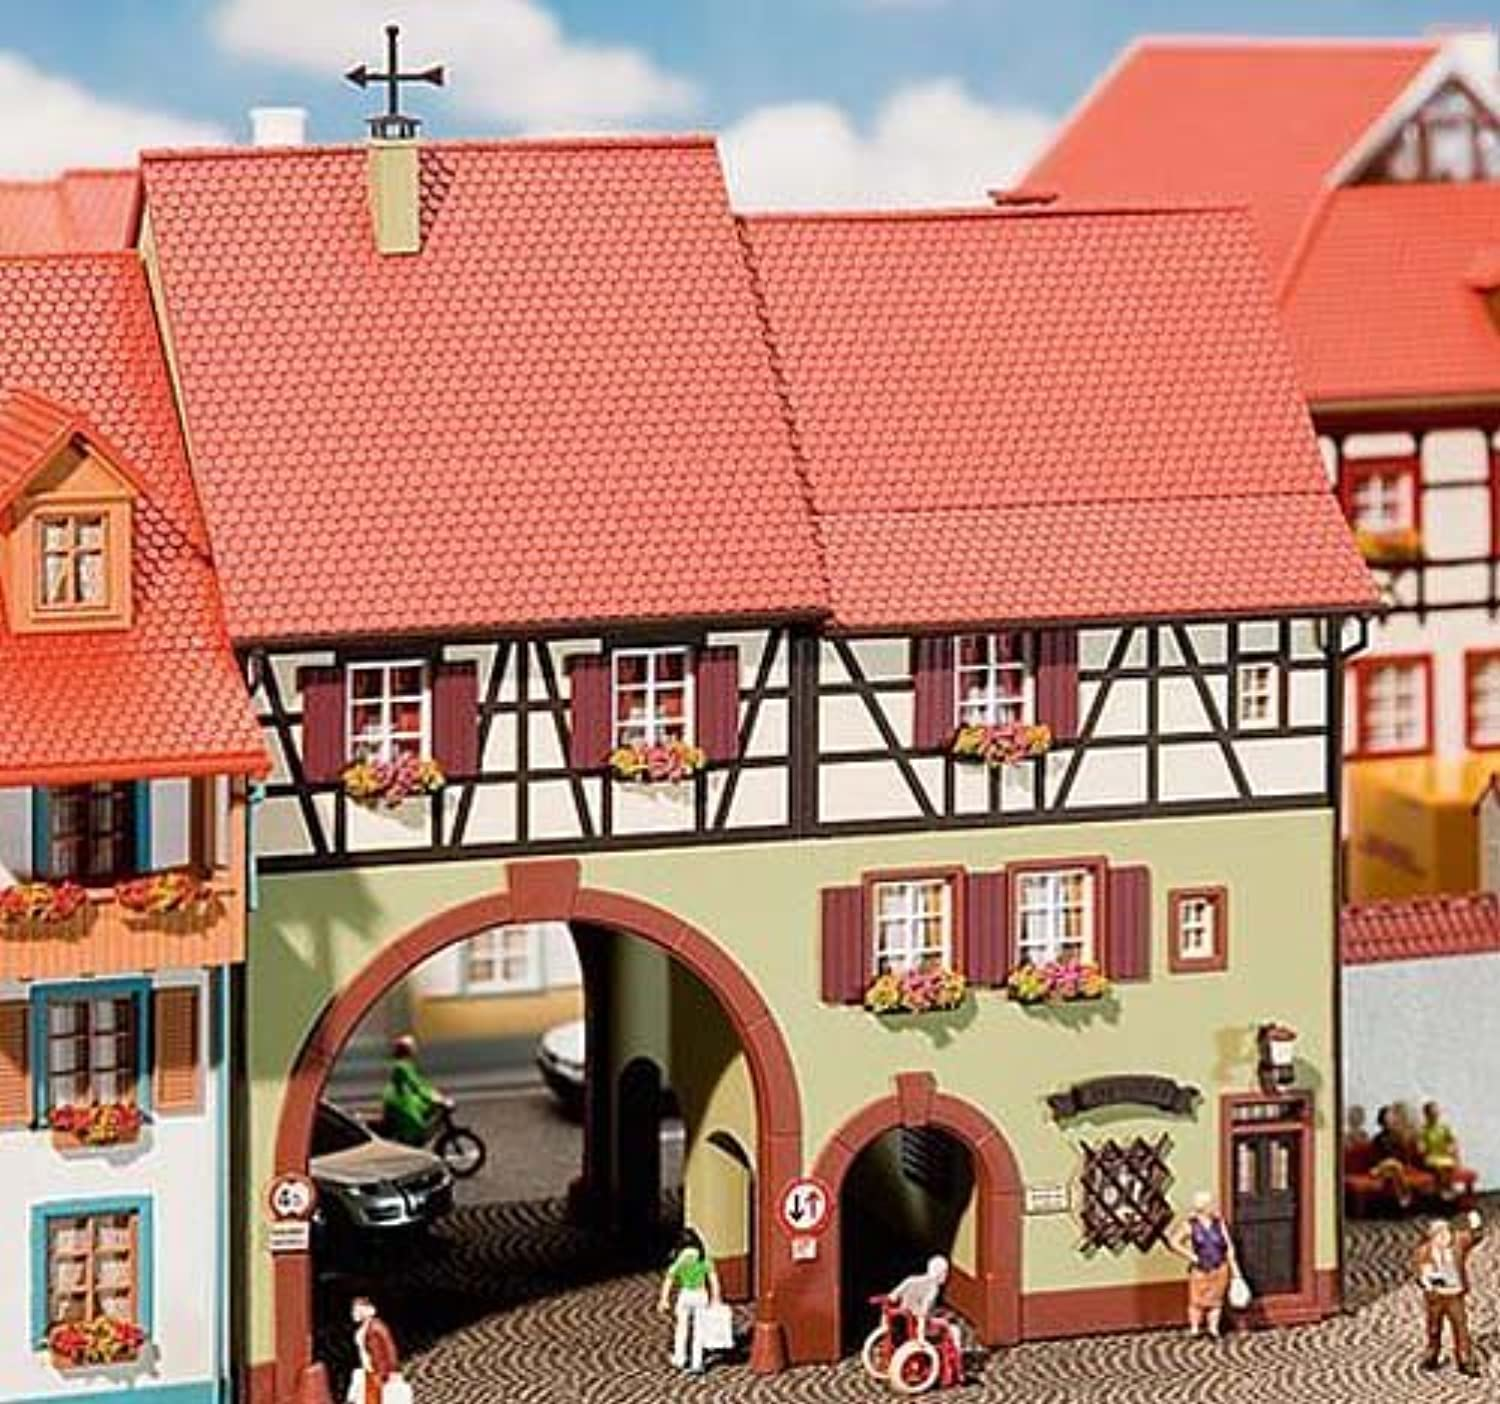 Faller 130499 H0 city house with gate by Faller